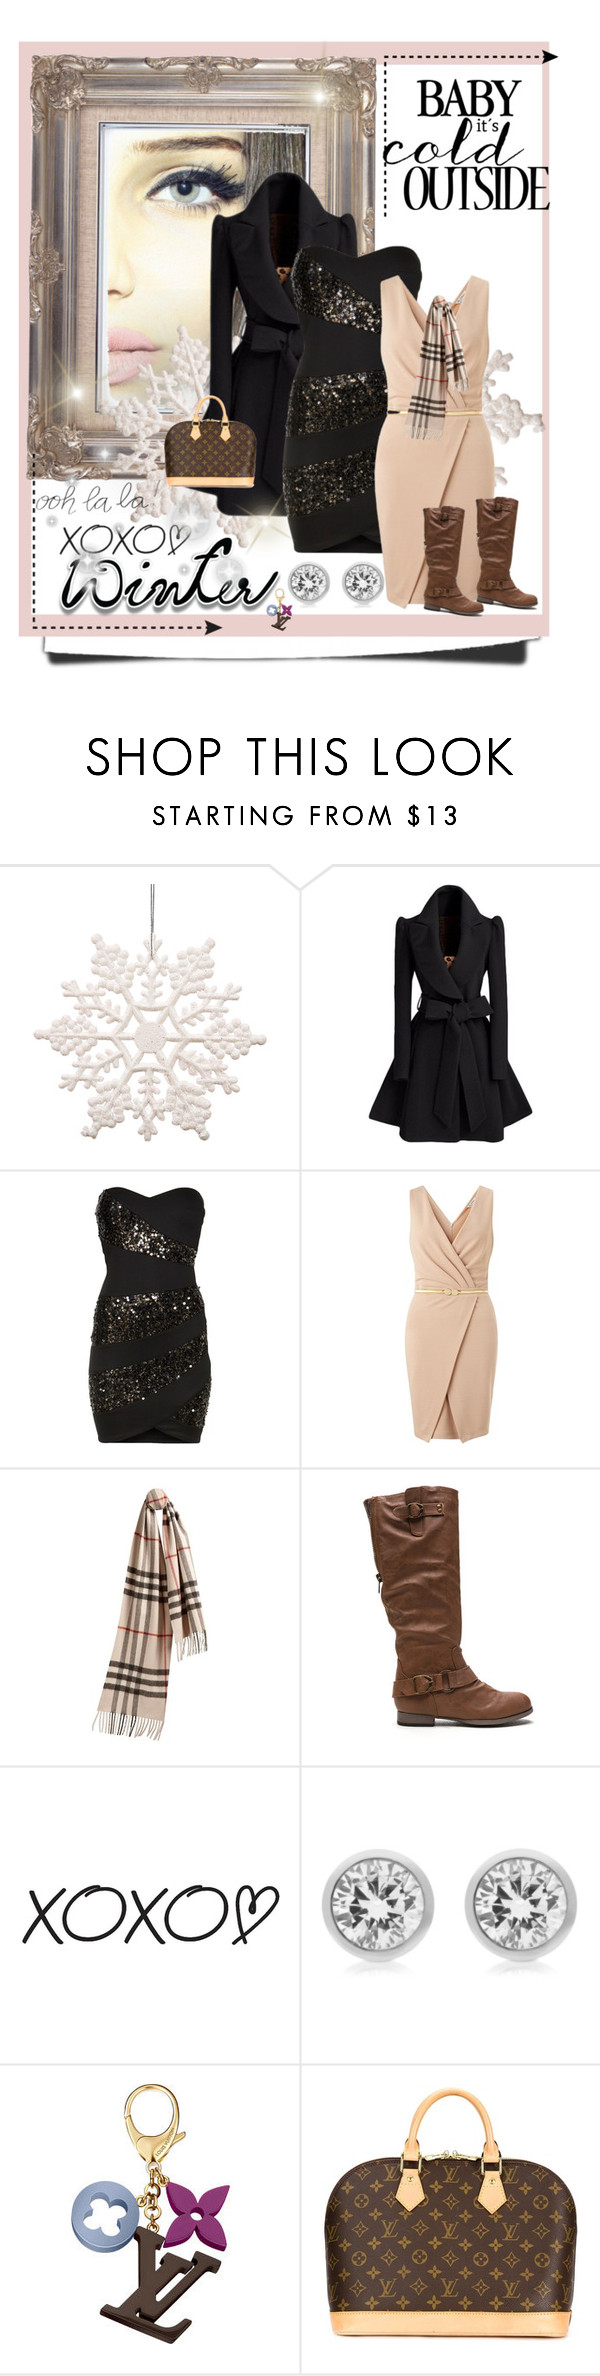 """""""Baby It's Cold Outside"""" by fashionablesam ❤ liked on Polyvore featuring Chi Chi, Miss Selfridge, Burberry, Michael Kors, Louis Vuitton, women's clothing, women's fashion, women, female and woman"""